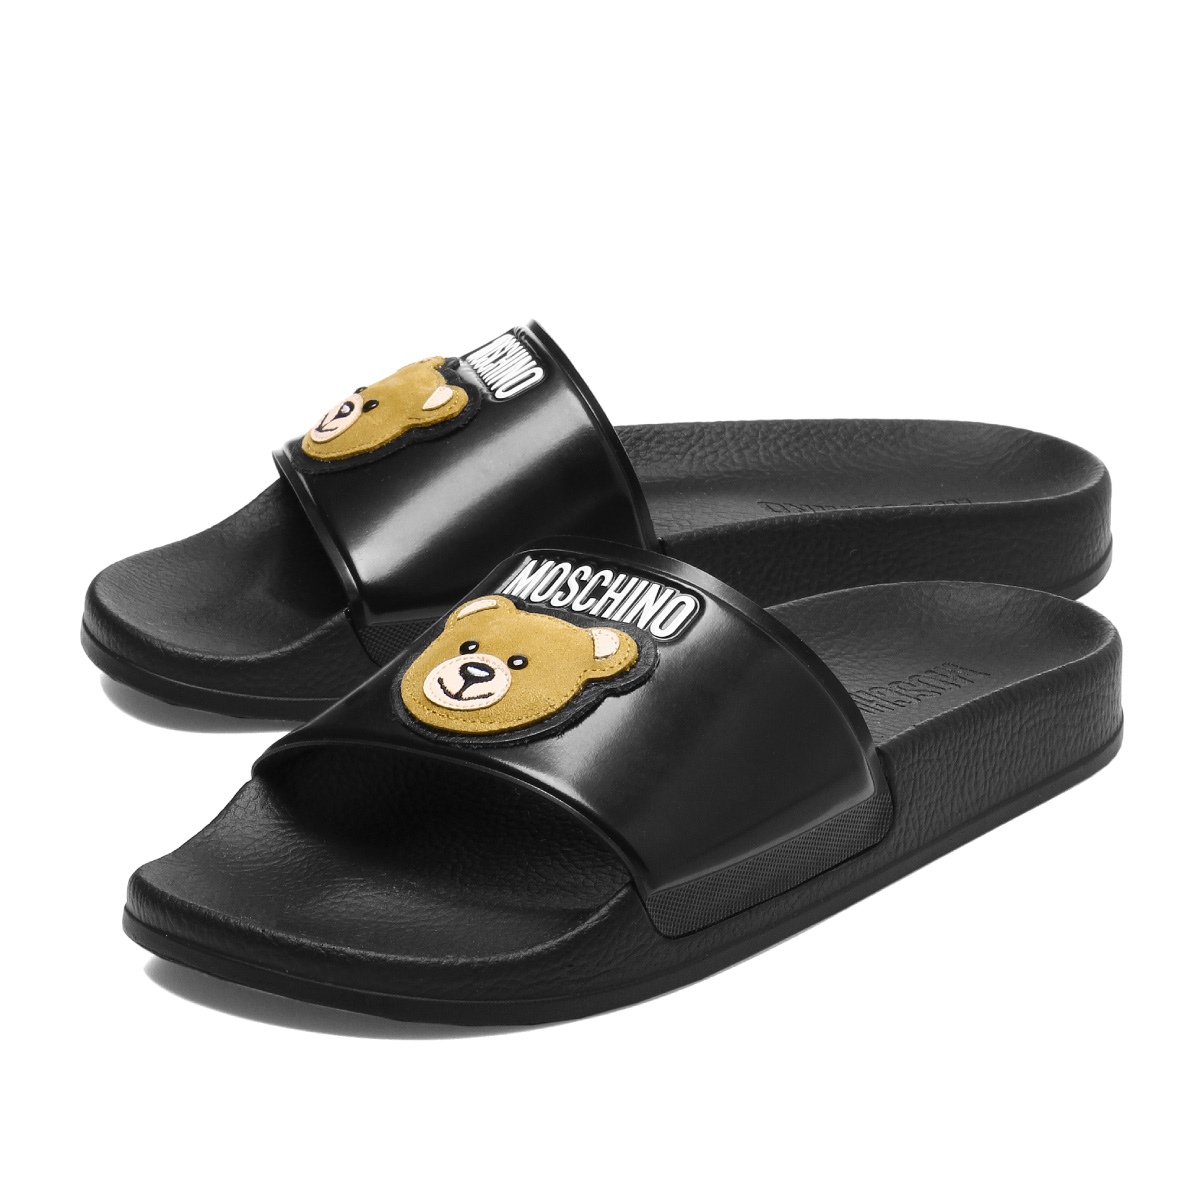 41095d794c30 importshopdouble  Moschino MOSCHINO shoes Lady s MA28052G15M13000 ...